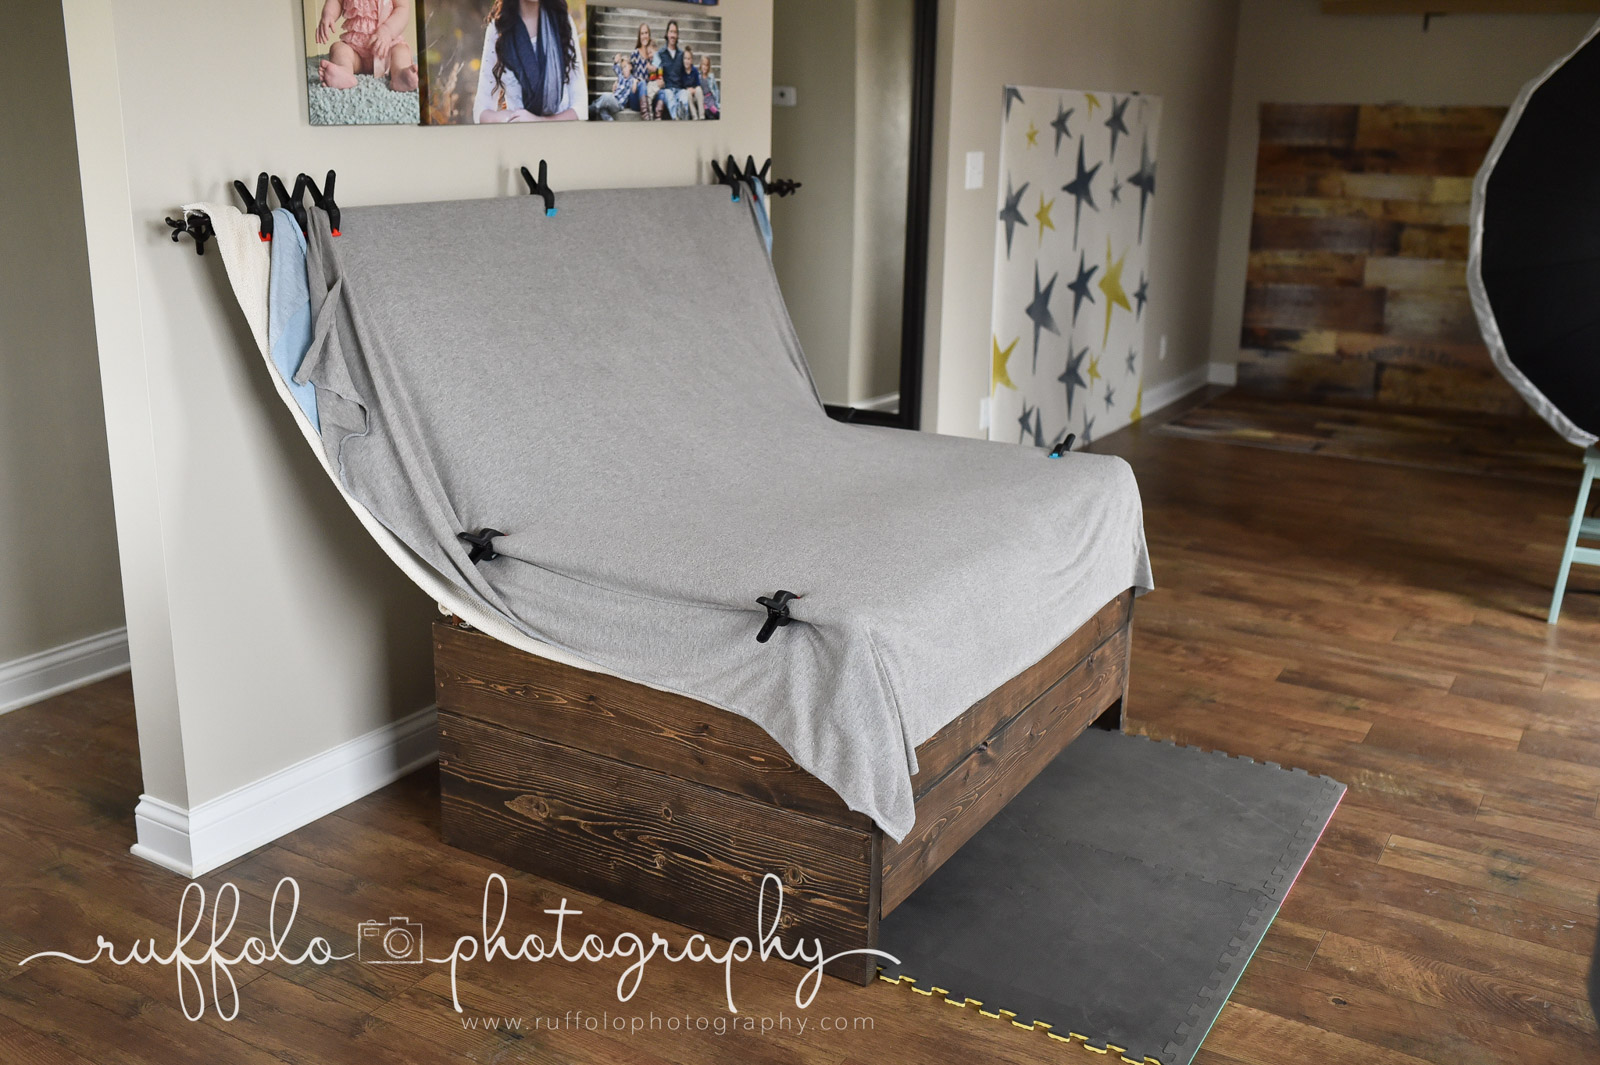 Diy bean bag stand for newborn pictures by netasha ruffolo